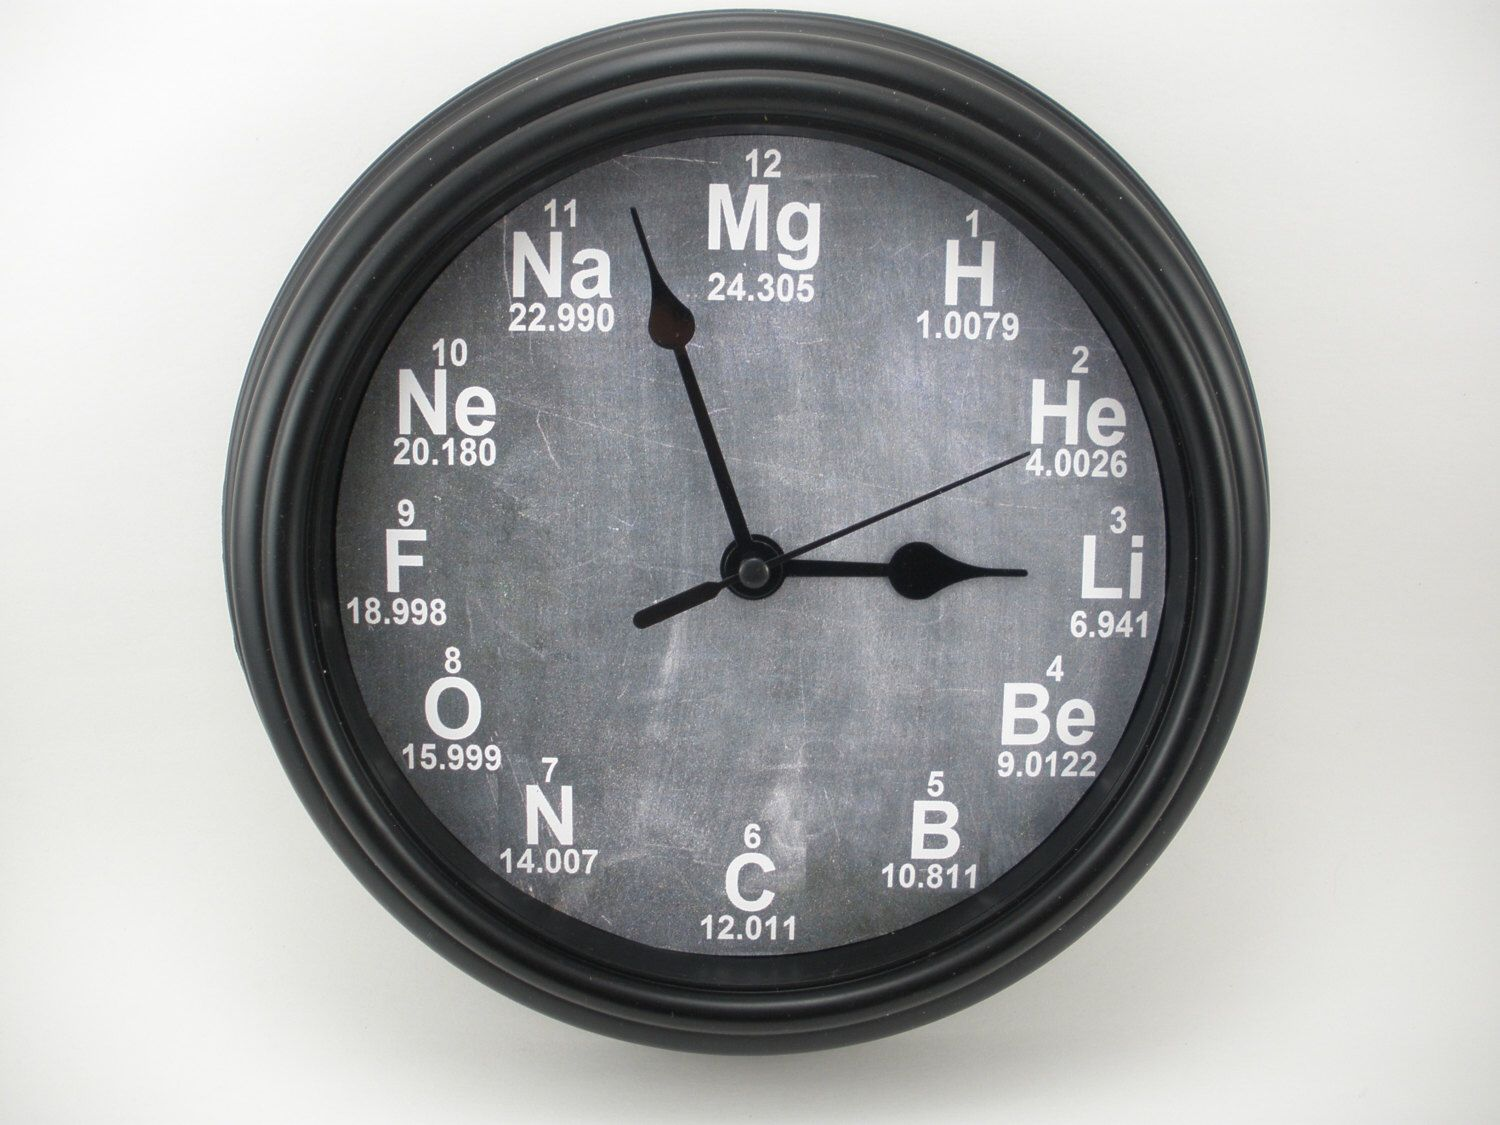 Personalized science periodic table chemistry teachers wall clock personalized science periodic table chemistry teachers wall clock by clockadoodledew on etsy https urtaz Images